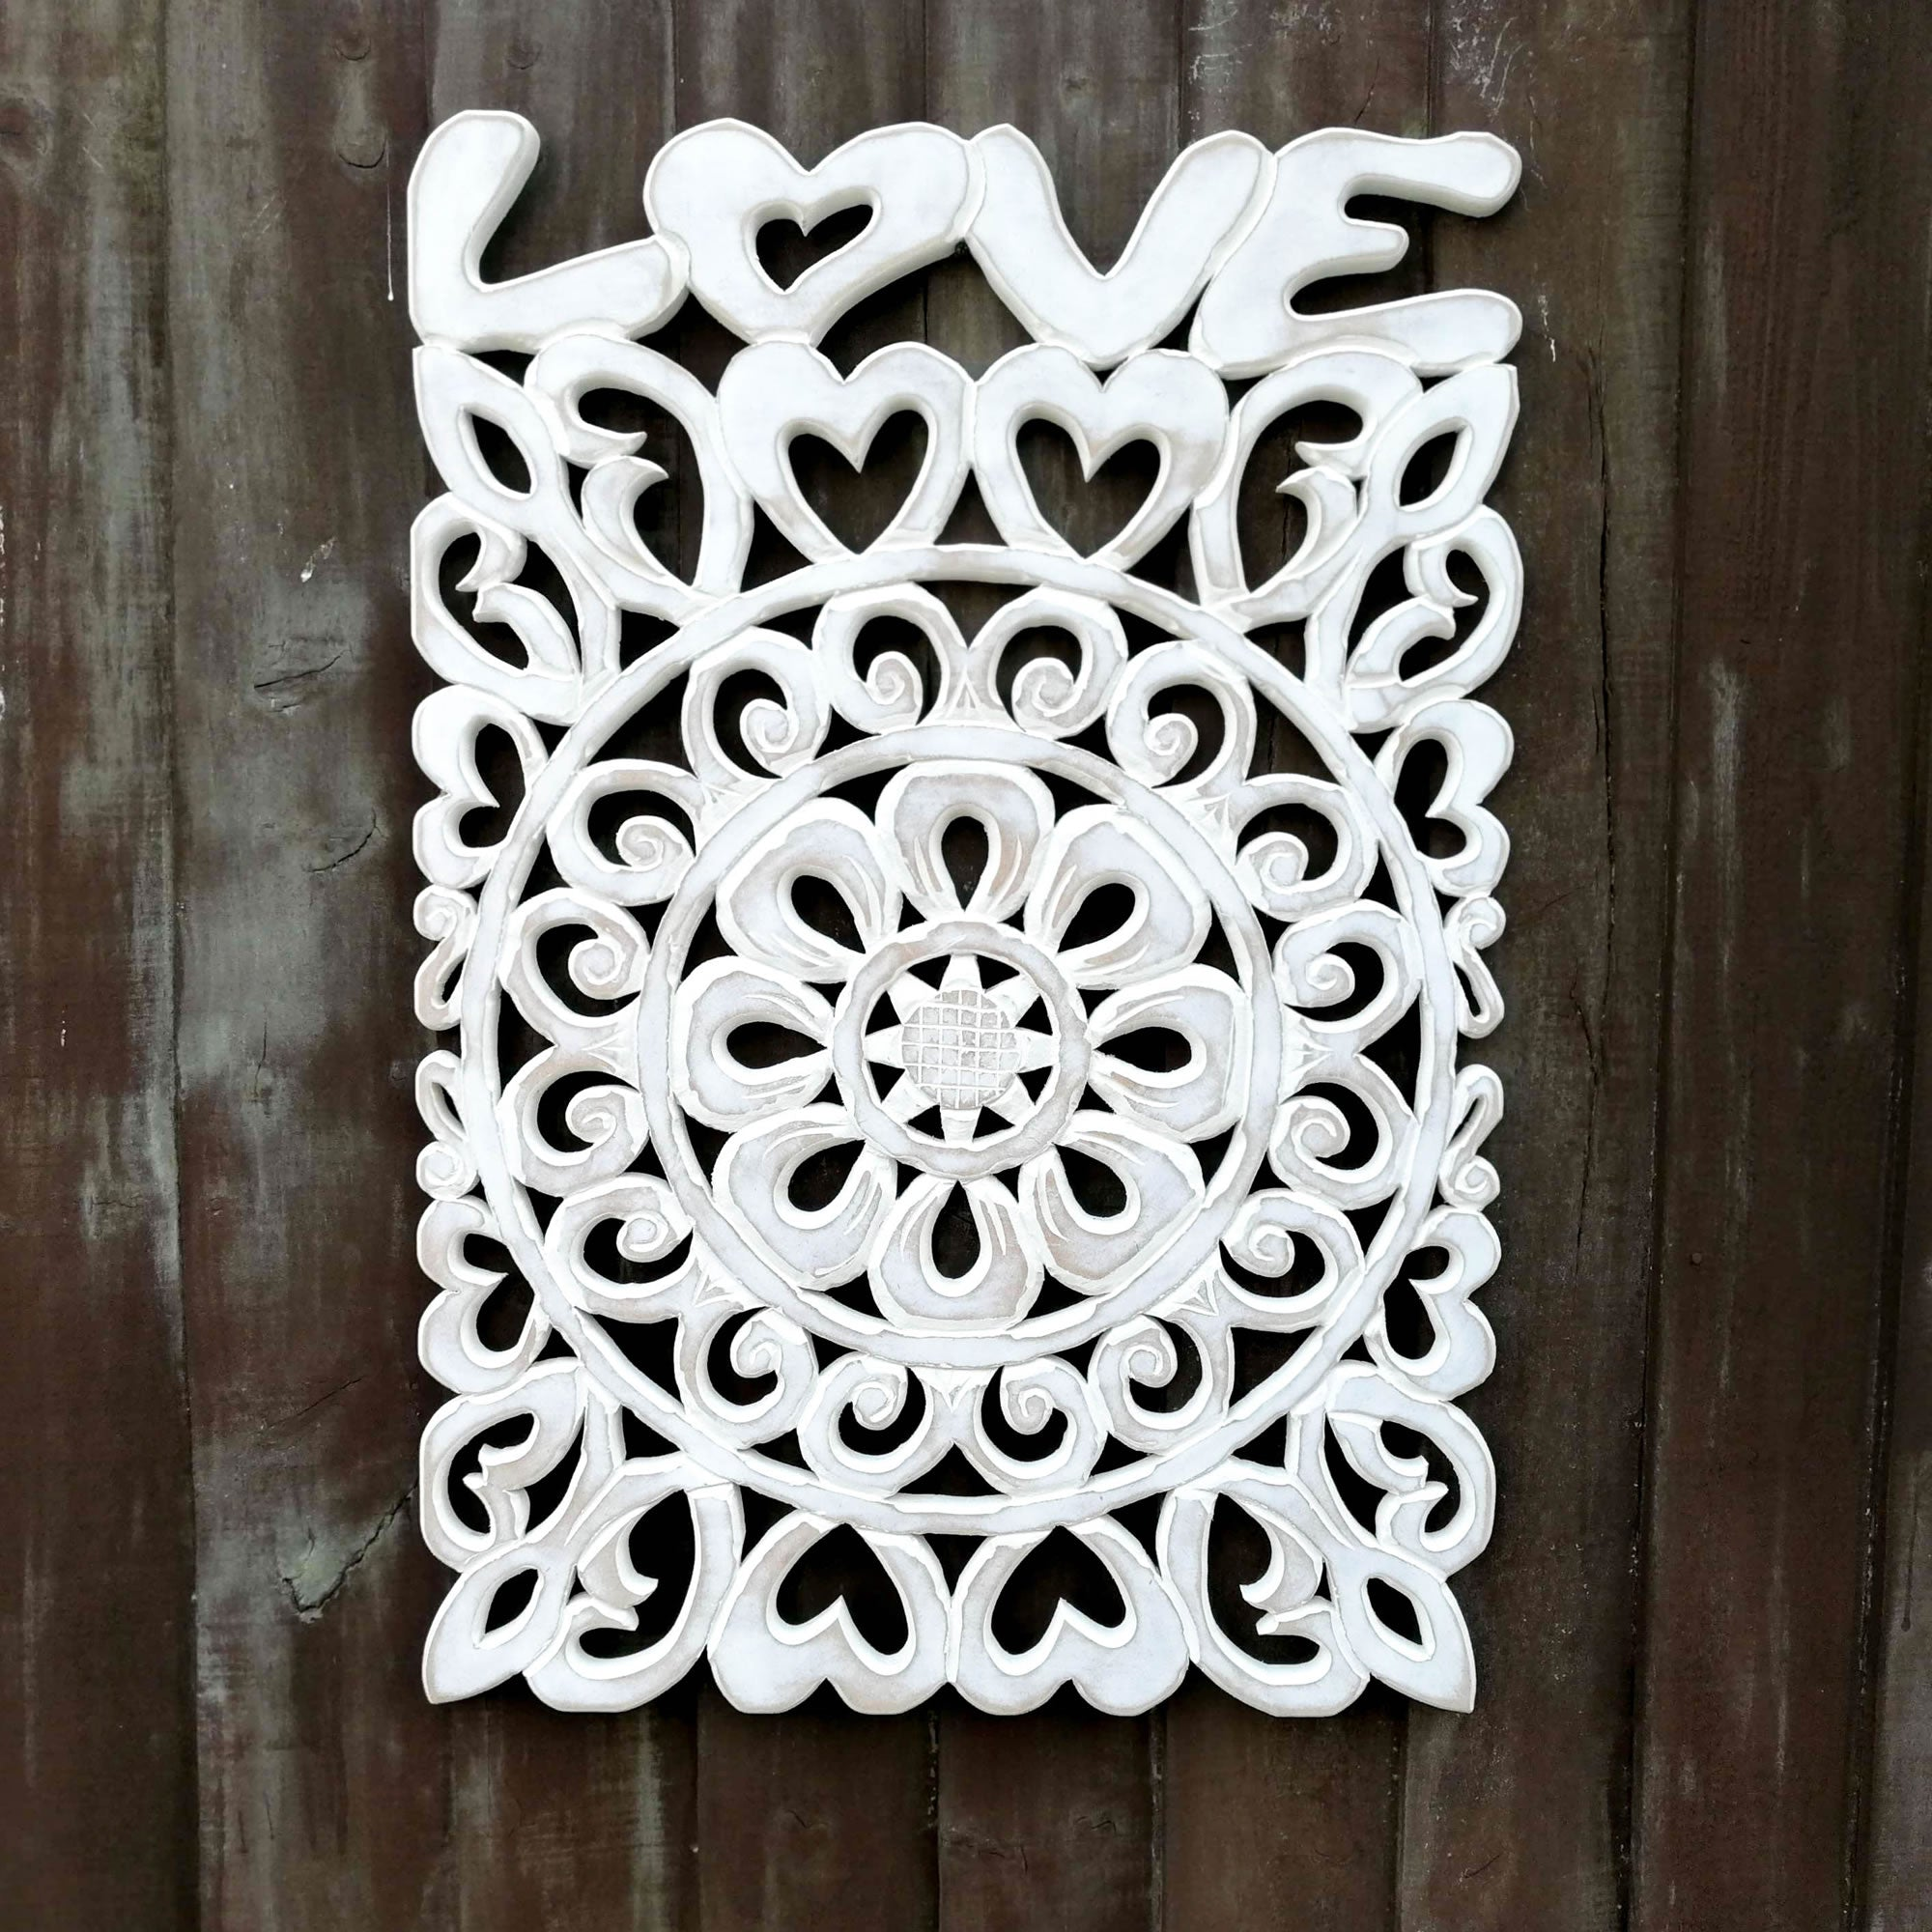 Handmade Carved Wooden Decorative Wall Art Lotus Headboard Panel LOVE